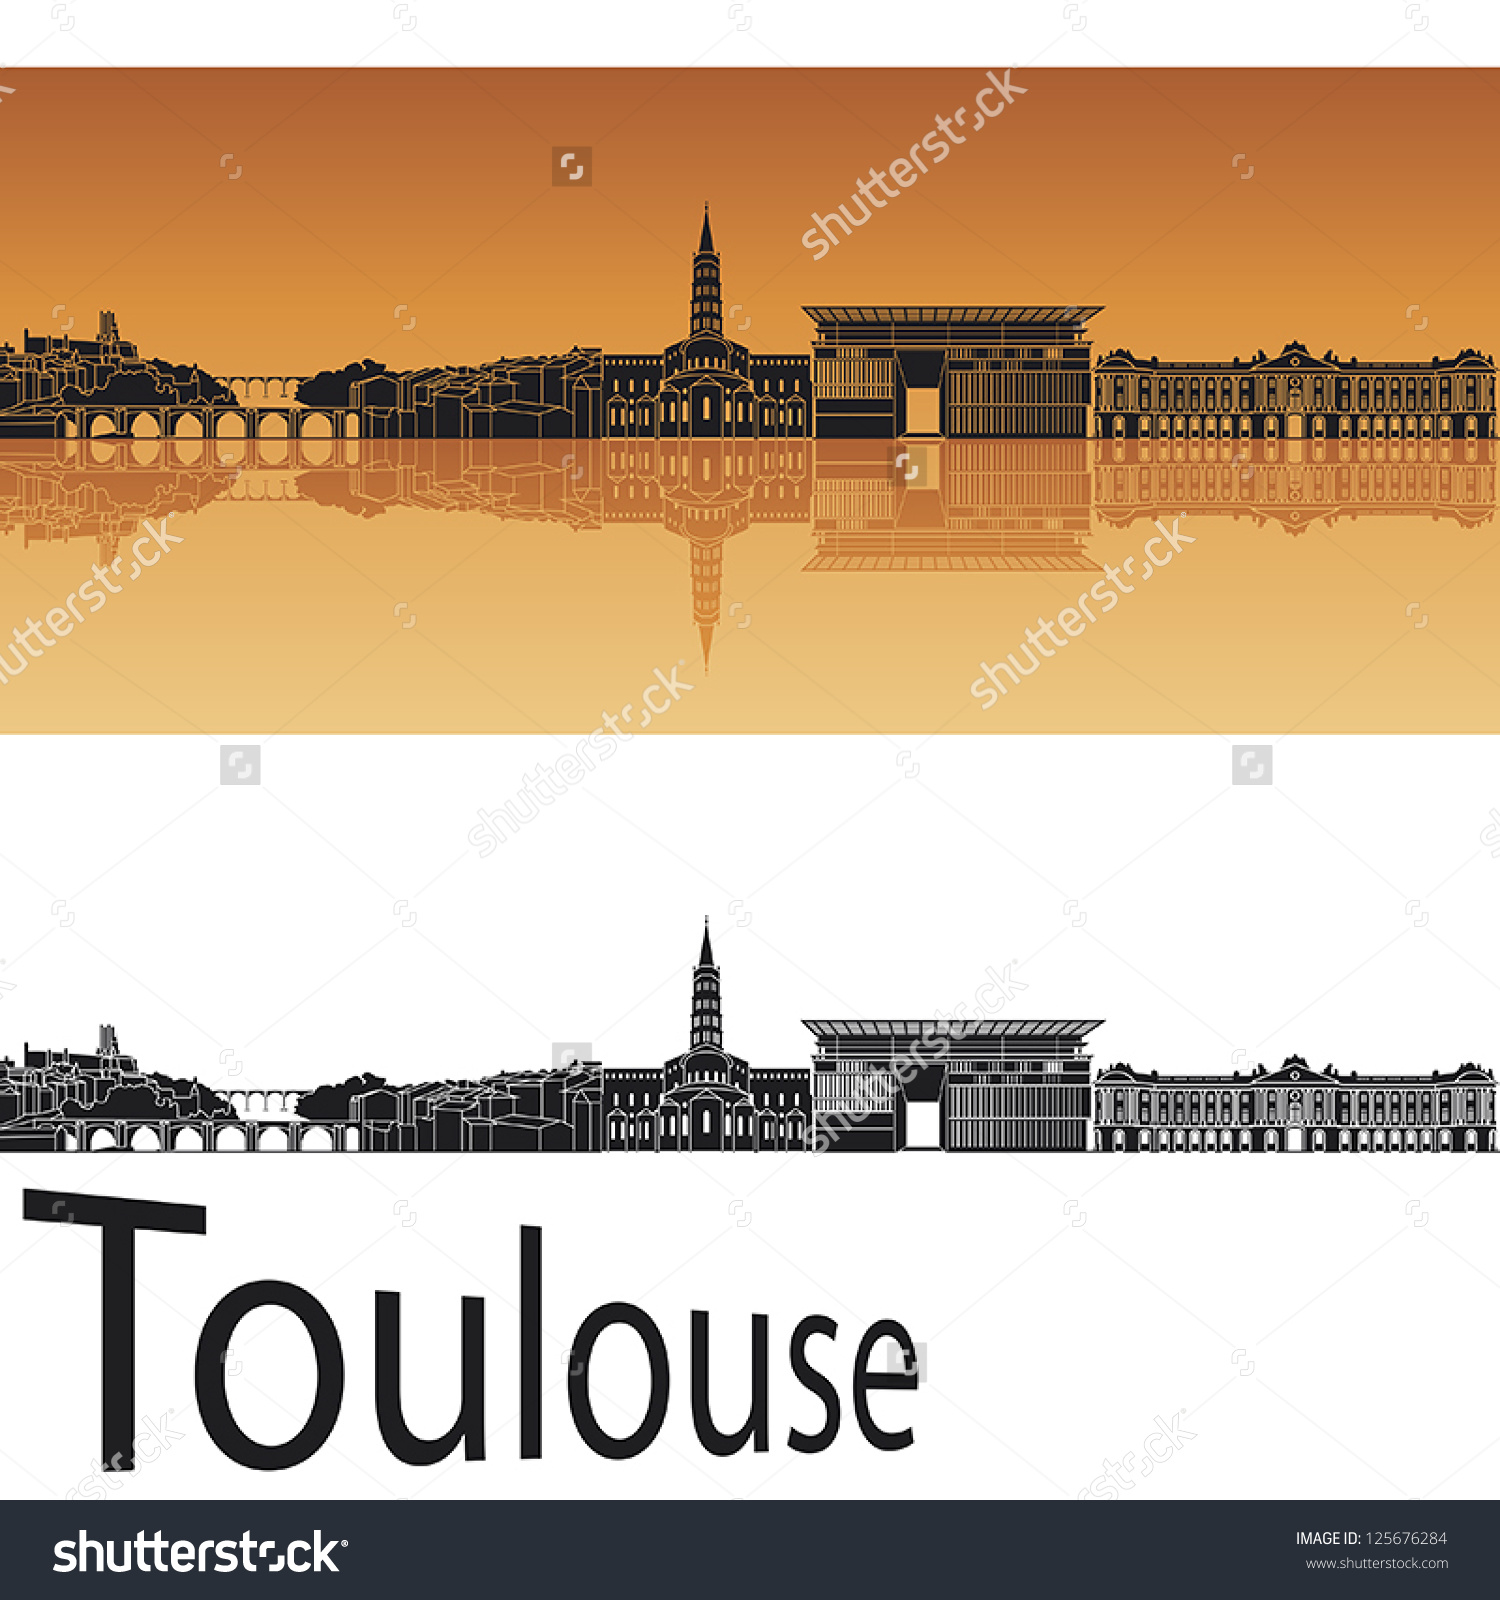 Toulouse Skyline Orange Background Editable Vector Stock Vector.